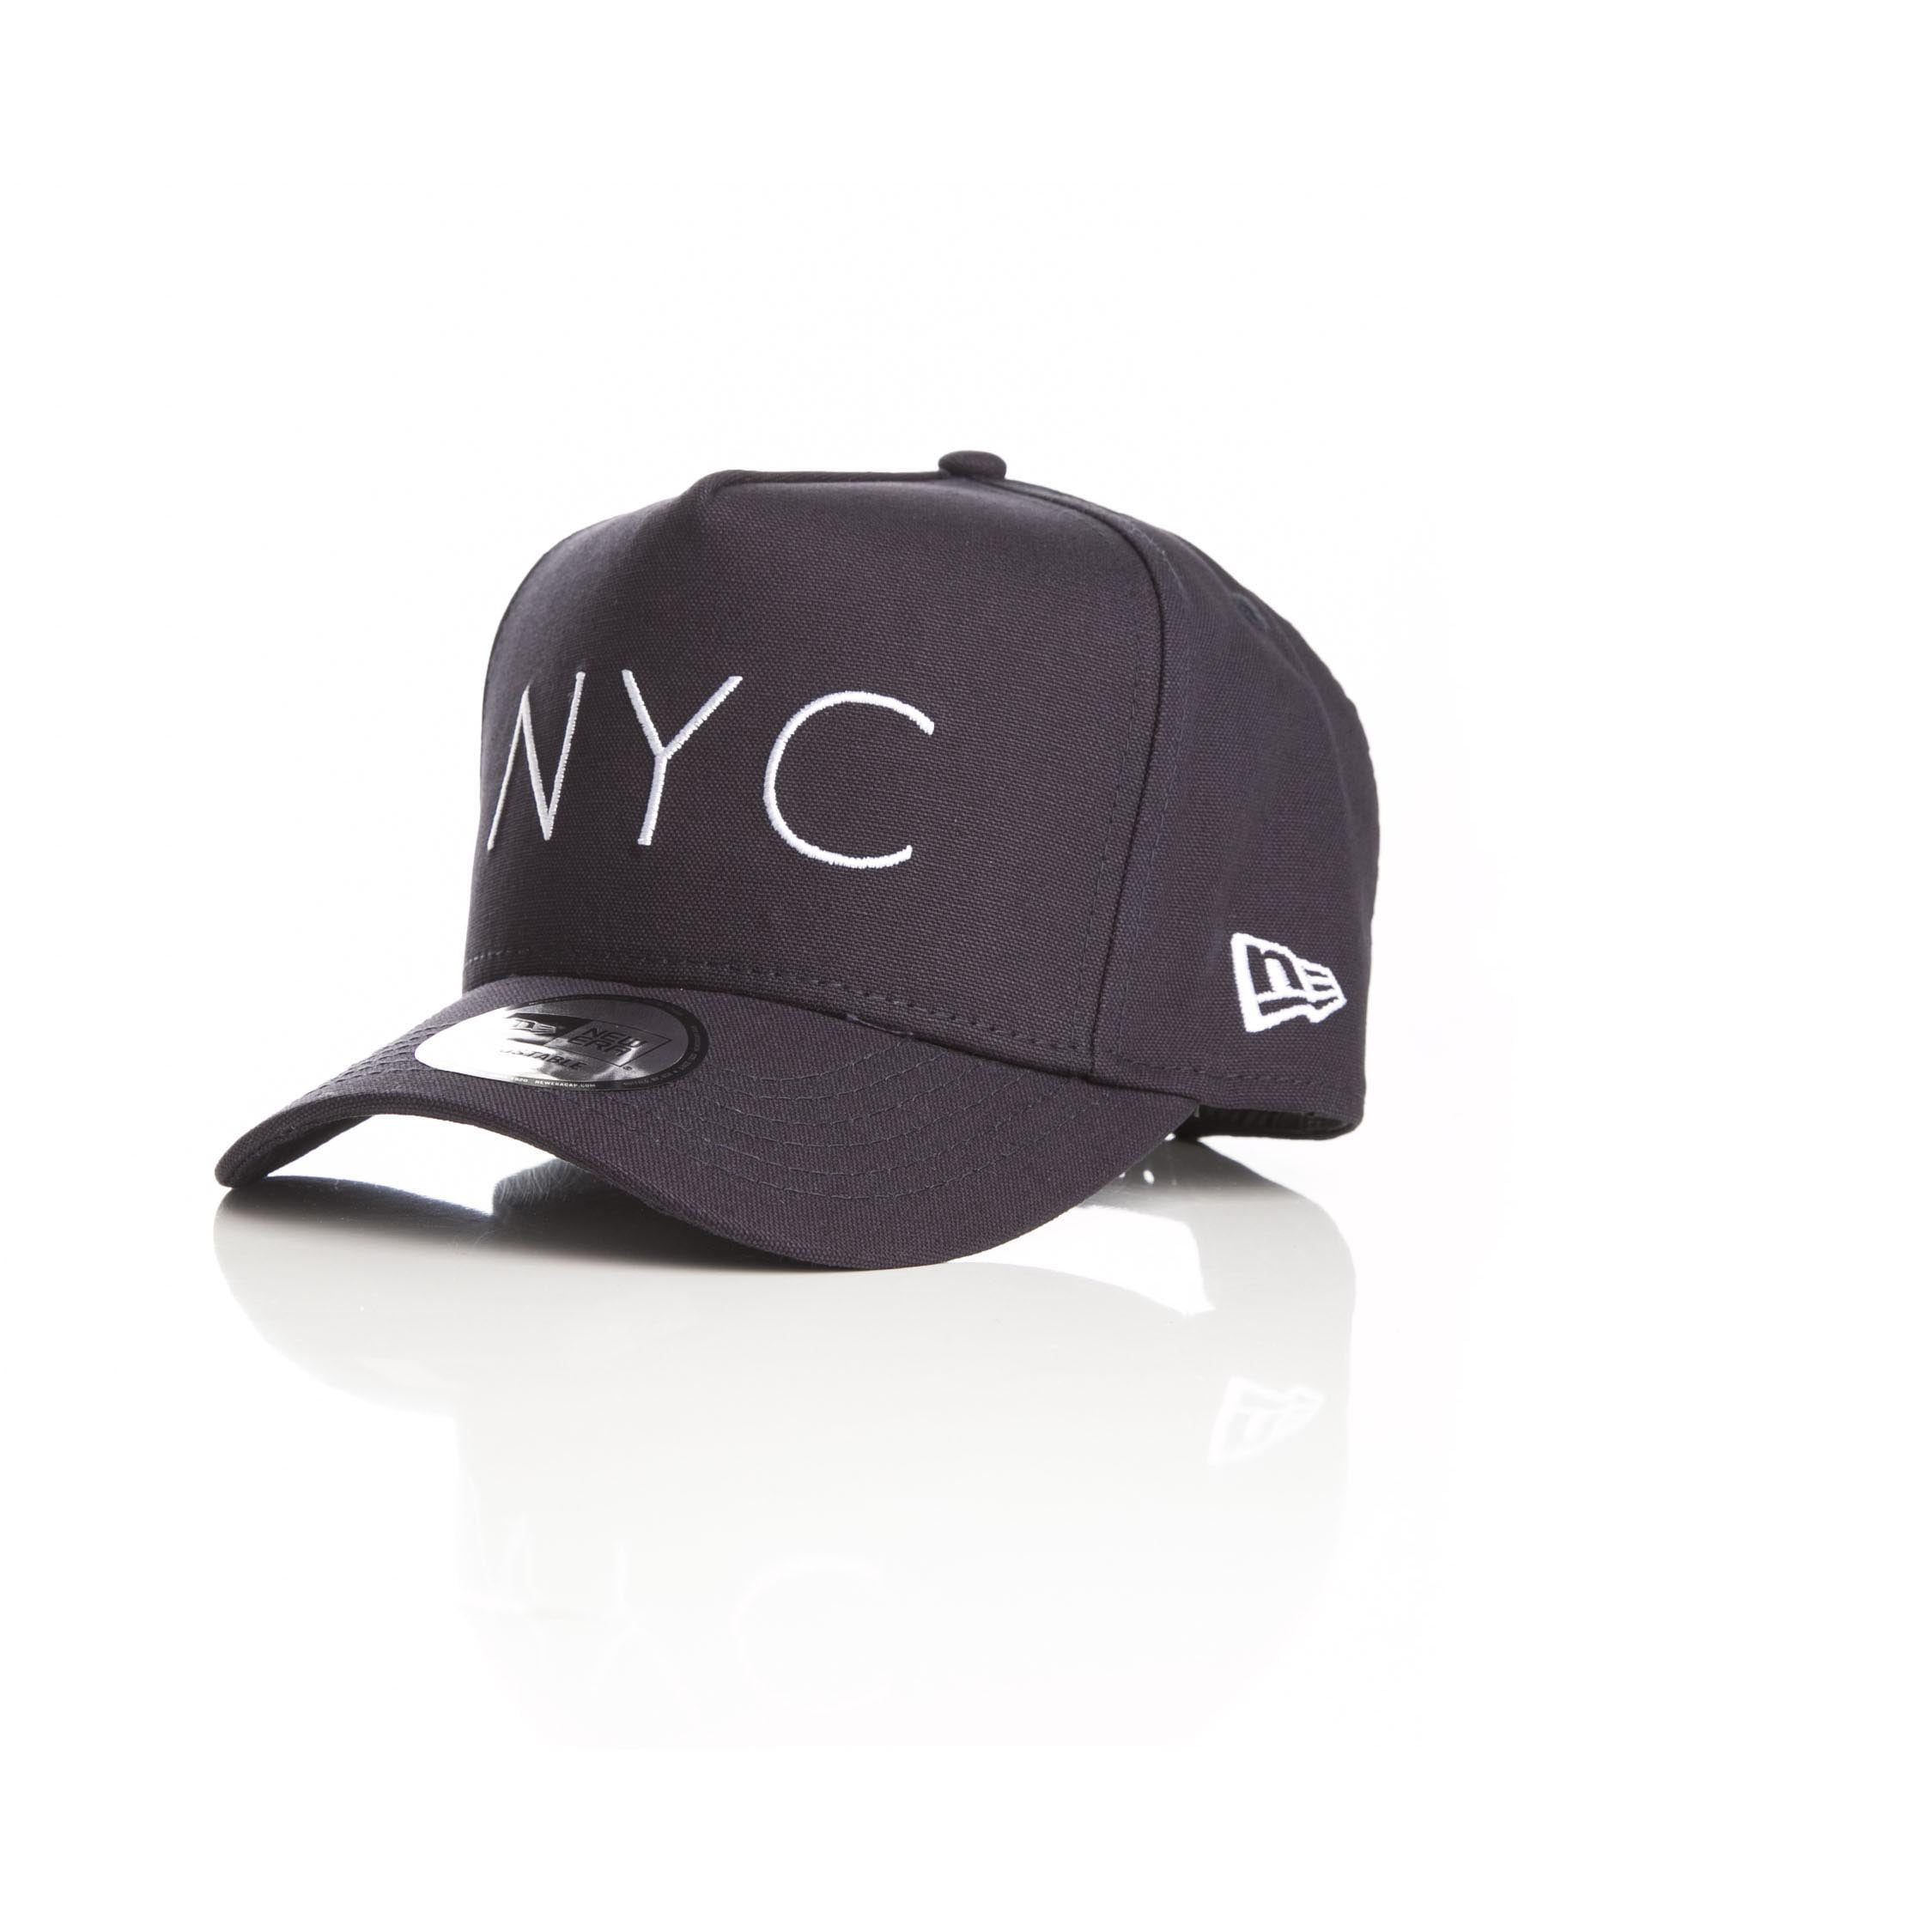 Bone New Era New York City 9forty navy